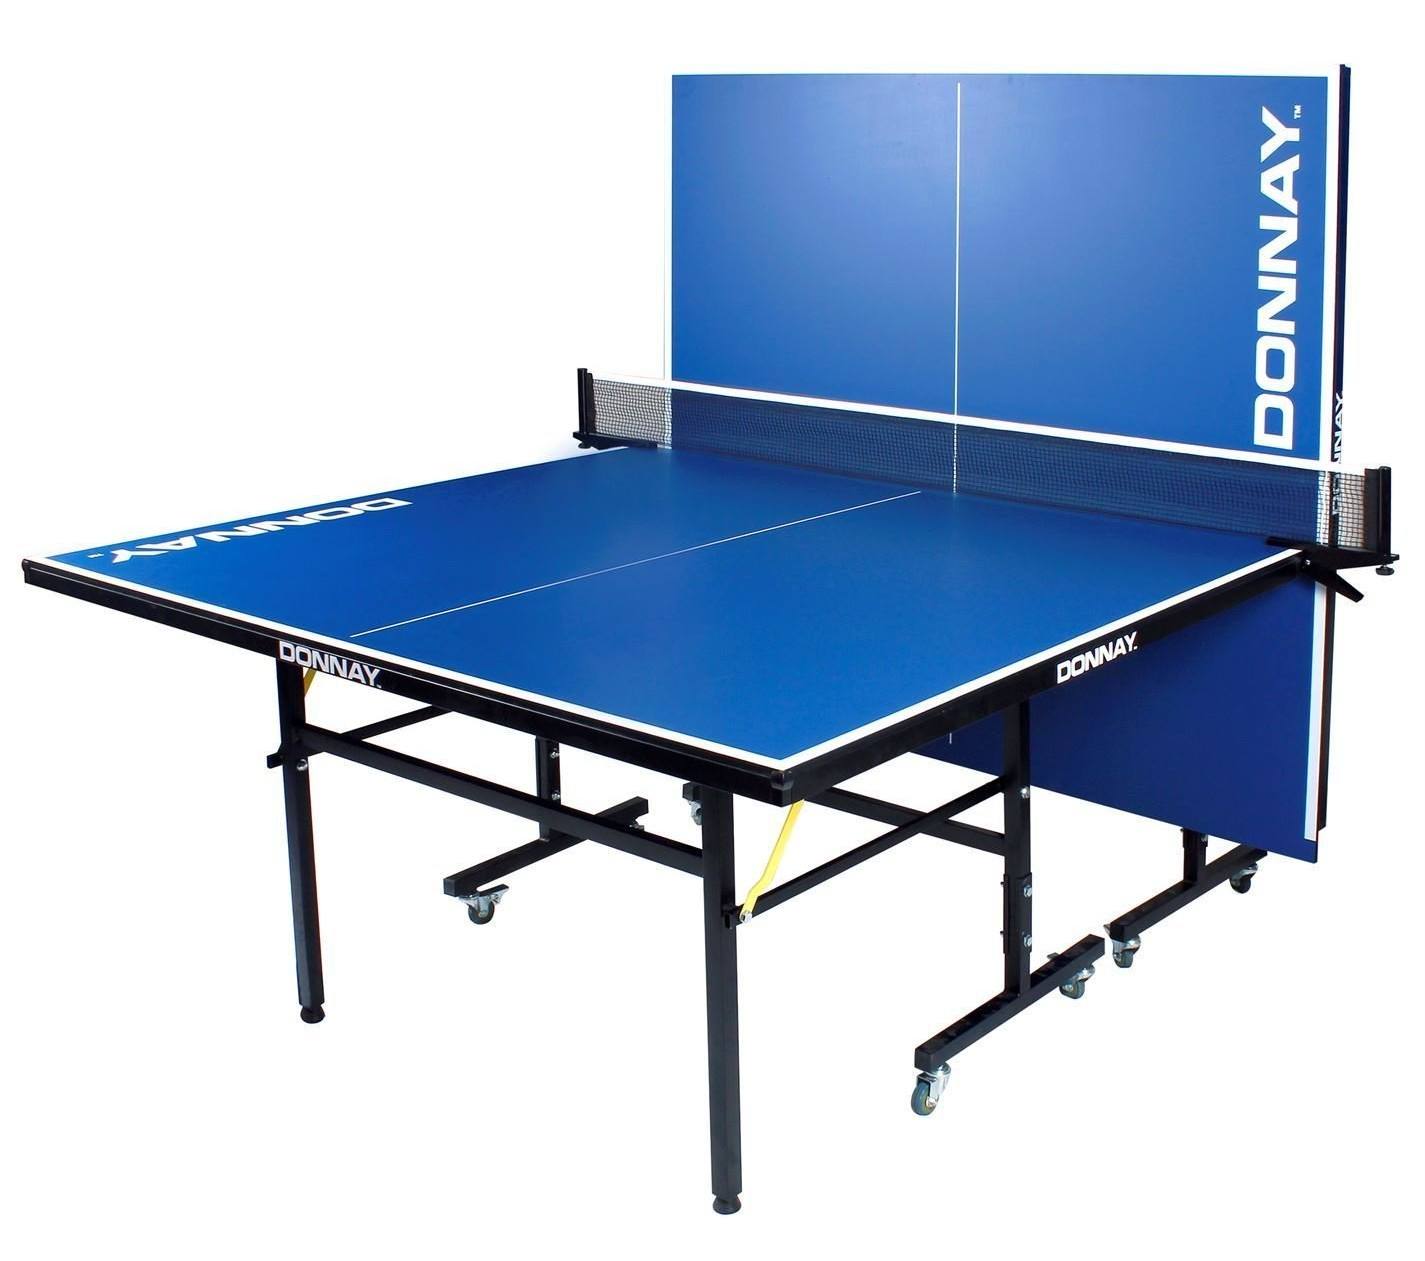 Donnay indoor outdoor table tennis table review - Weatherproof table tennis table ...